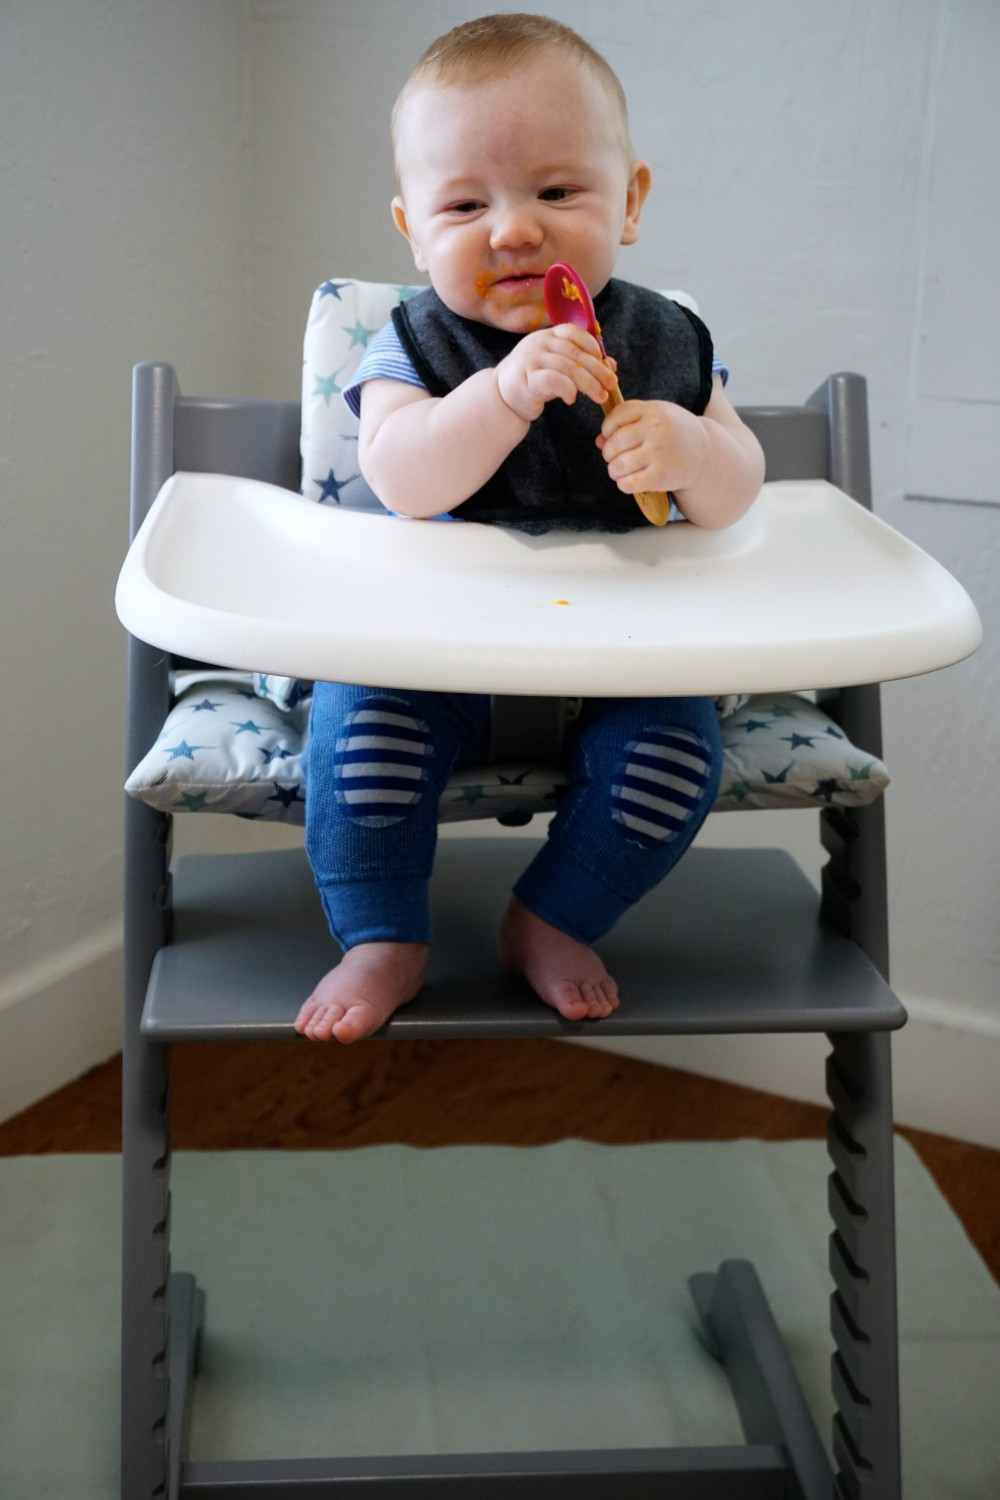 Mason's First Food Made Easier with Gathre Floor Mat-Avanchy Bamboo Spoon-Stokke High Chair-Gathre Mat-Have Need Want